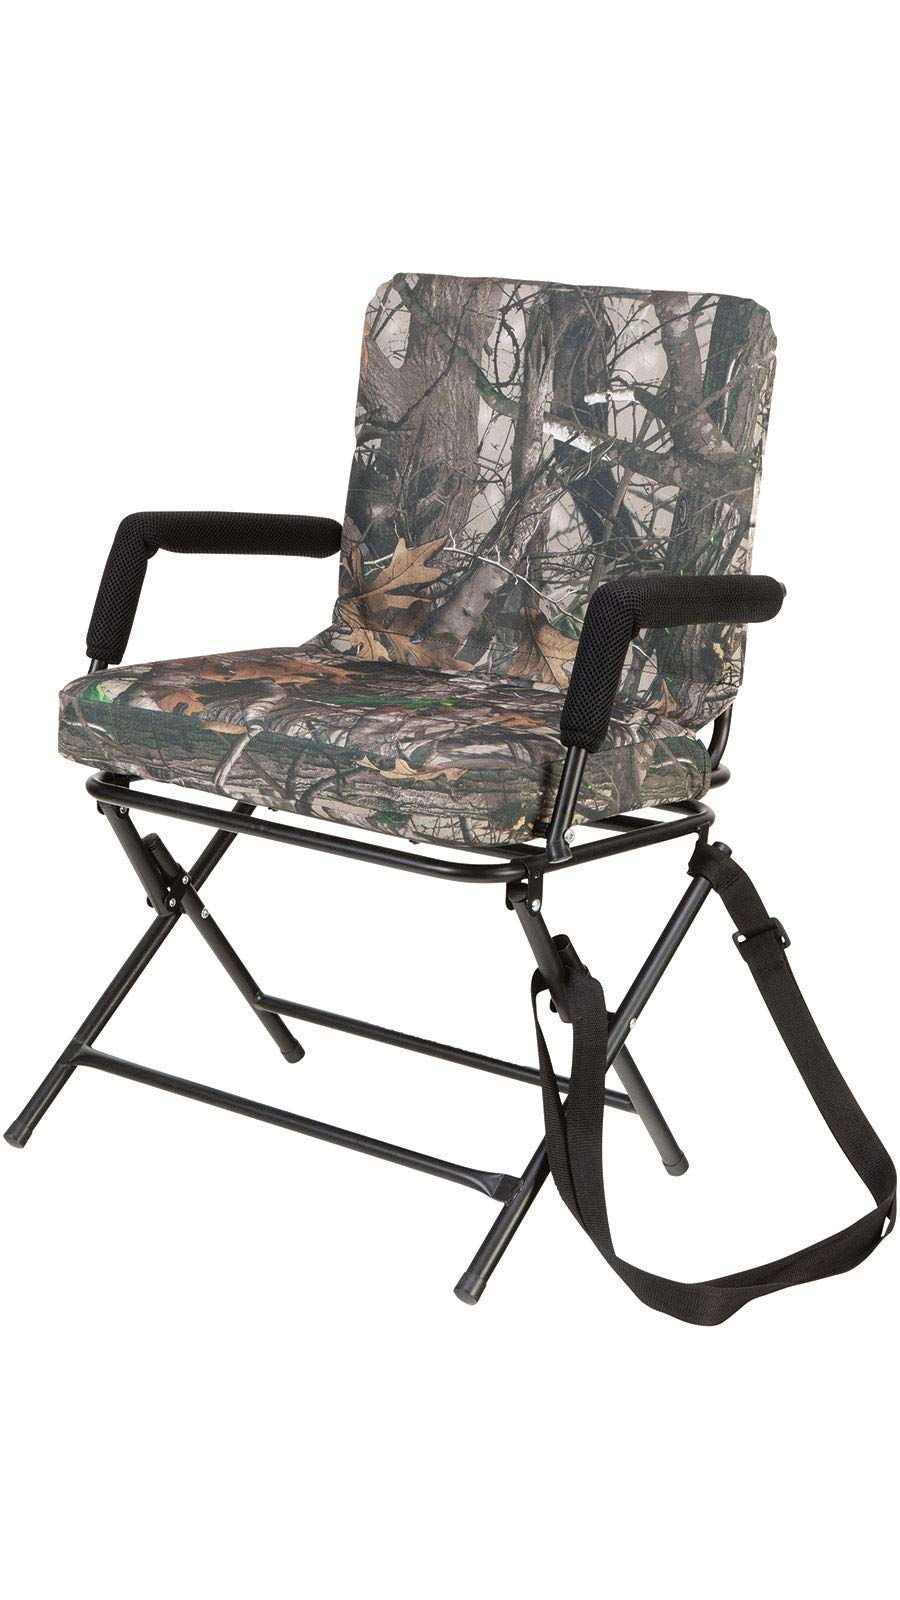 360° Swivel Chair Silent Operation Padded Hunting